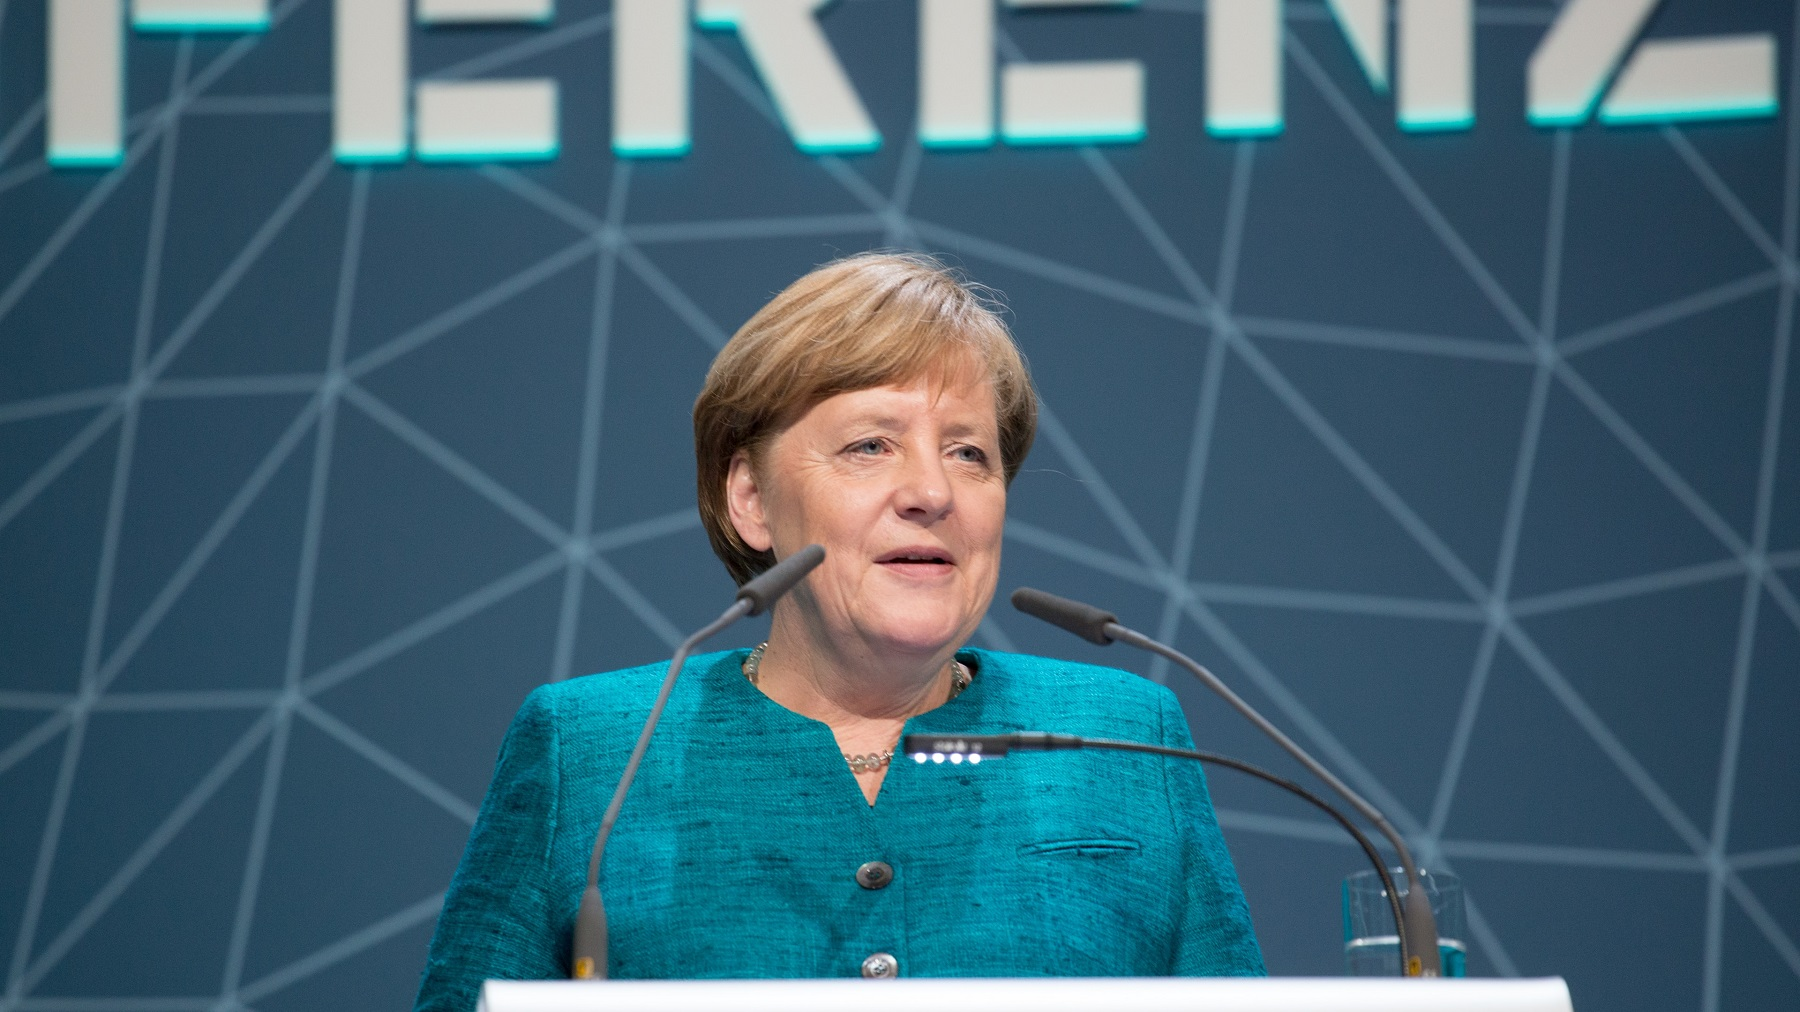 Angela Merkel 2017 - International Maritime Organization - IMO at German National Maritime Conference - CC BY 2.0